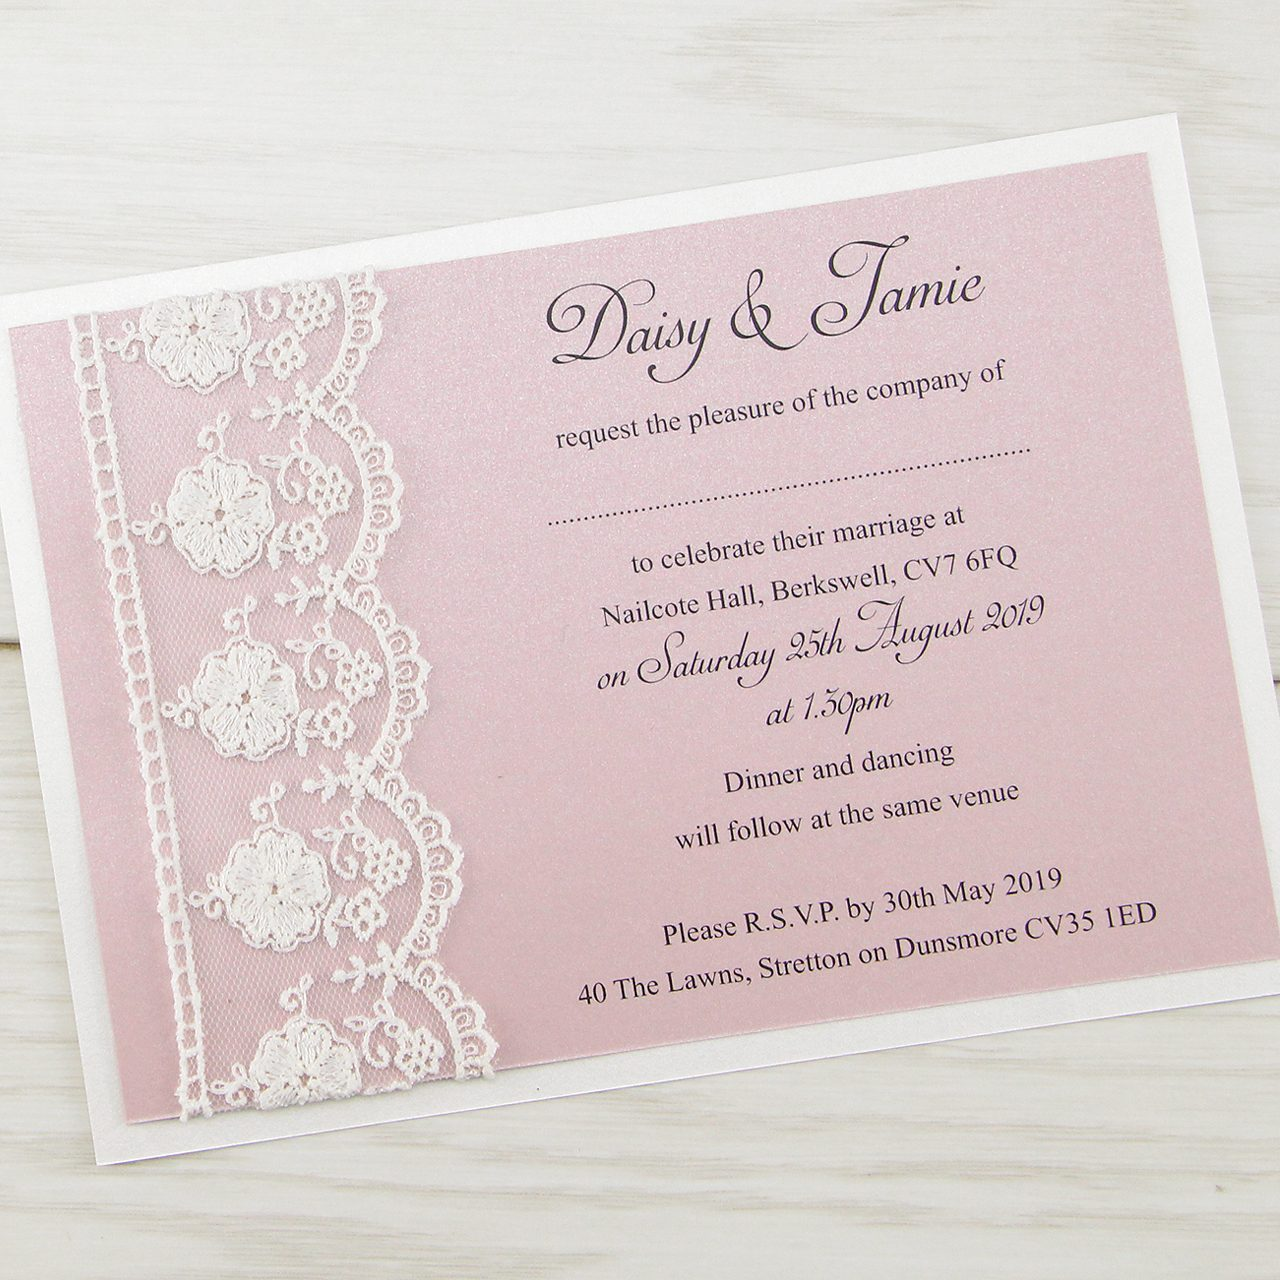 Elizabeth Pure Invitation Wedding Invites